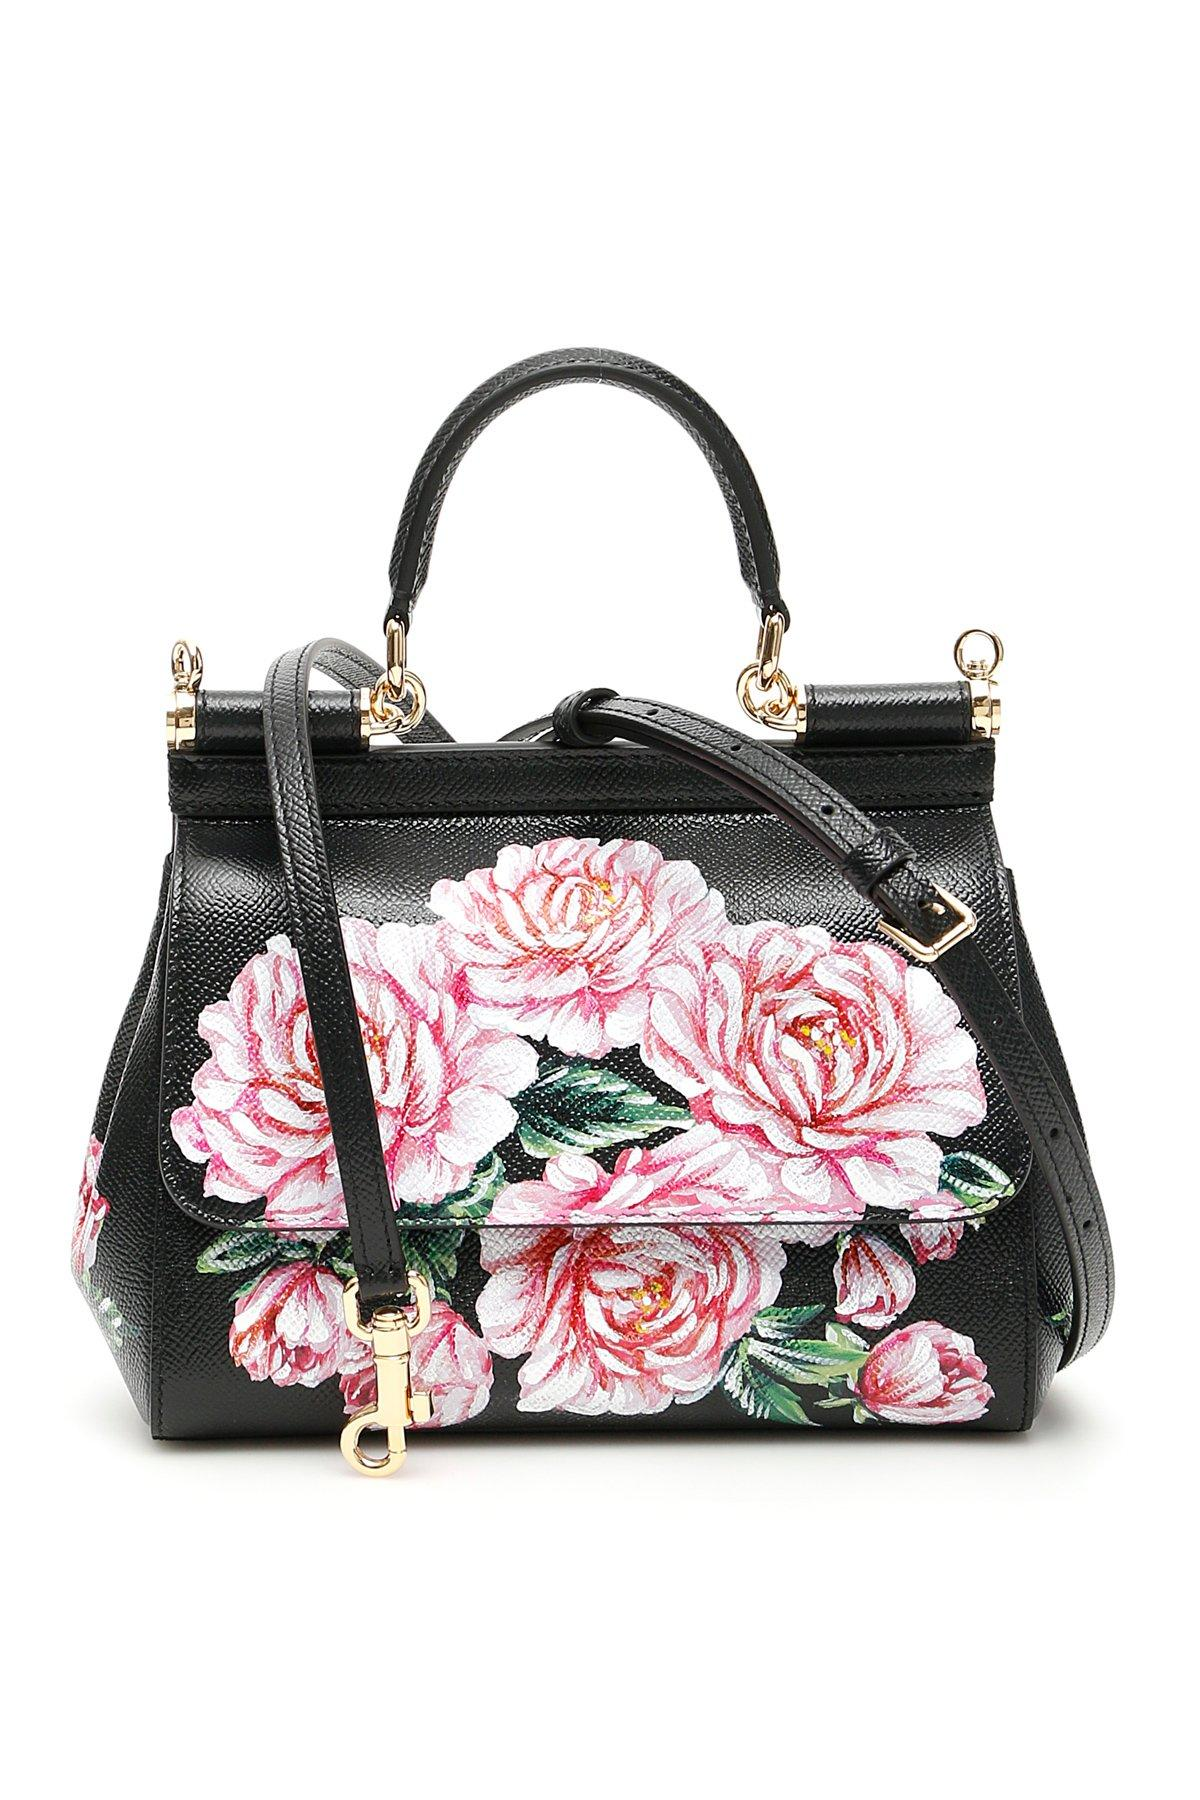 eaa455d23c Dolce   Gabbana Small Sicily Top Handle Bag in Black - Save 10% - Lyst